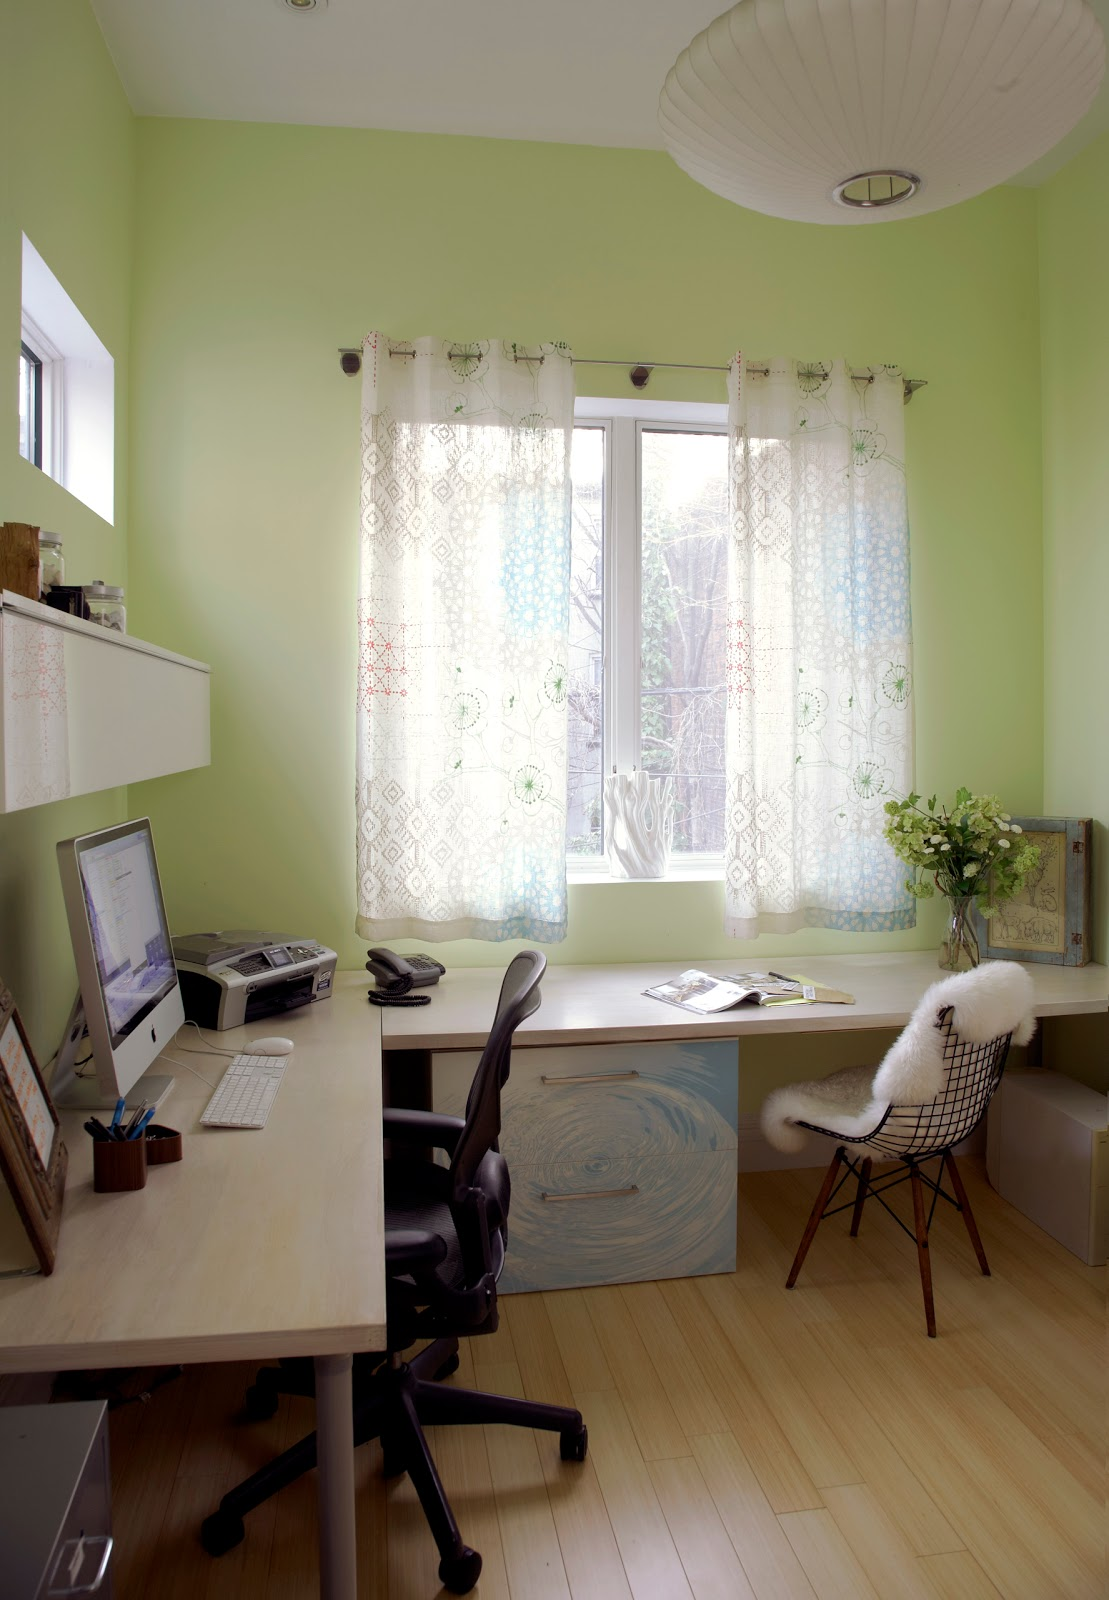 home office solution. A Home Office Solution For Hiding Gear And Adding Storage, Courtesy IKEA - CAVDESIGN R